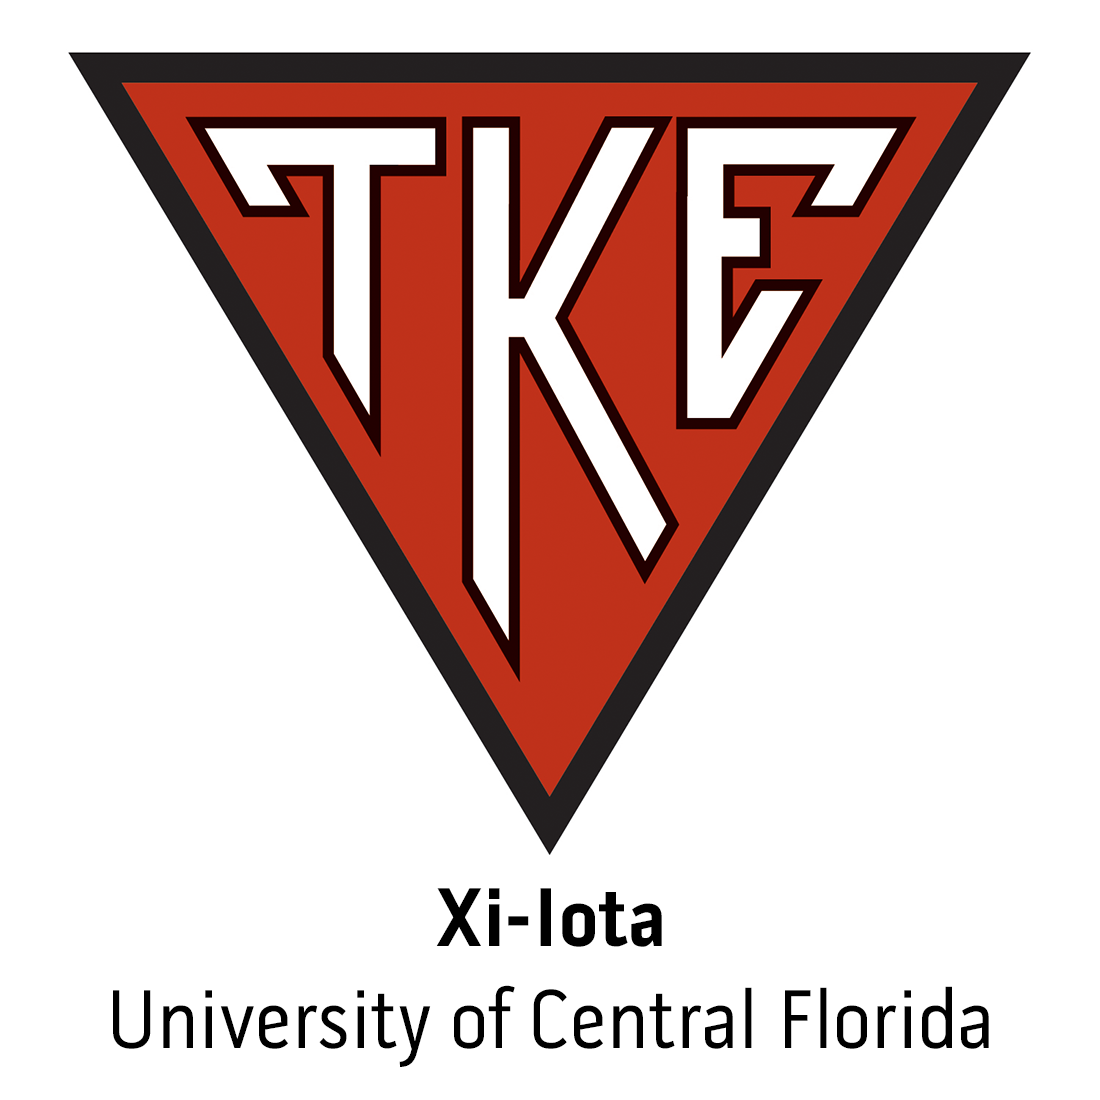 Xi-Iota Chapter at University of Central Florida